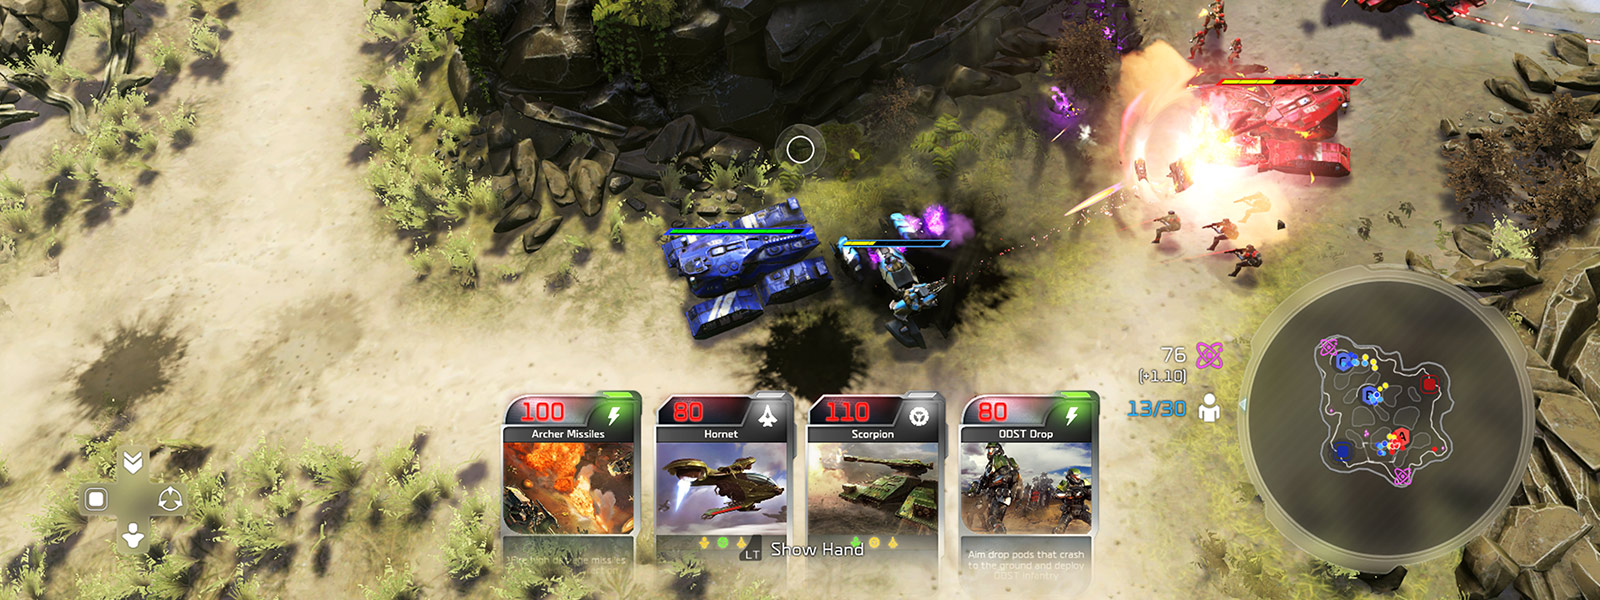 top view of Halo Wars 2 battle scene with 4 player cards showing